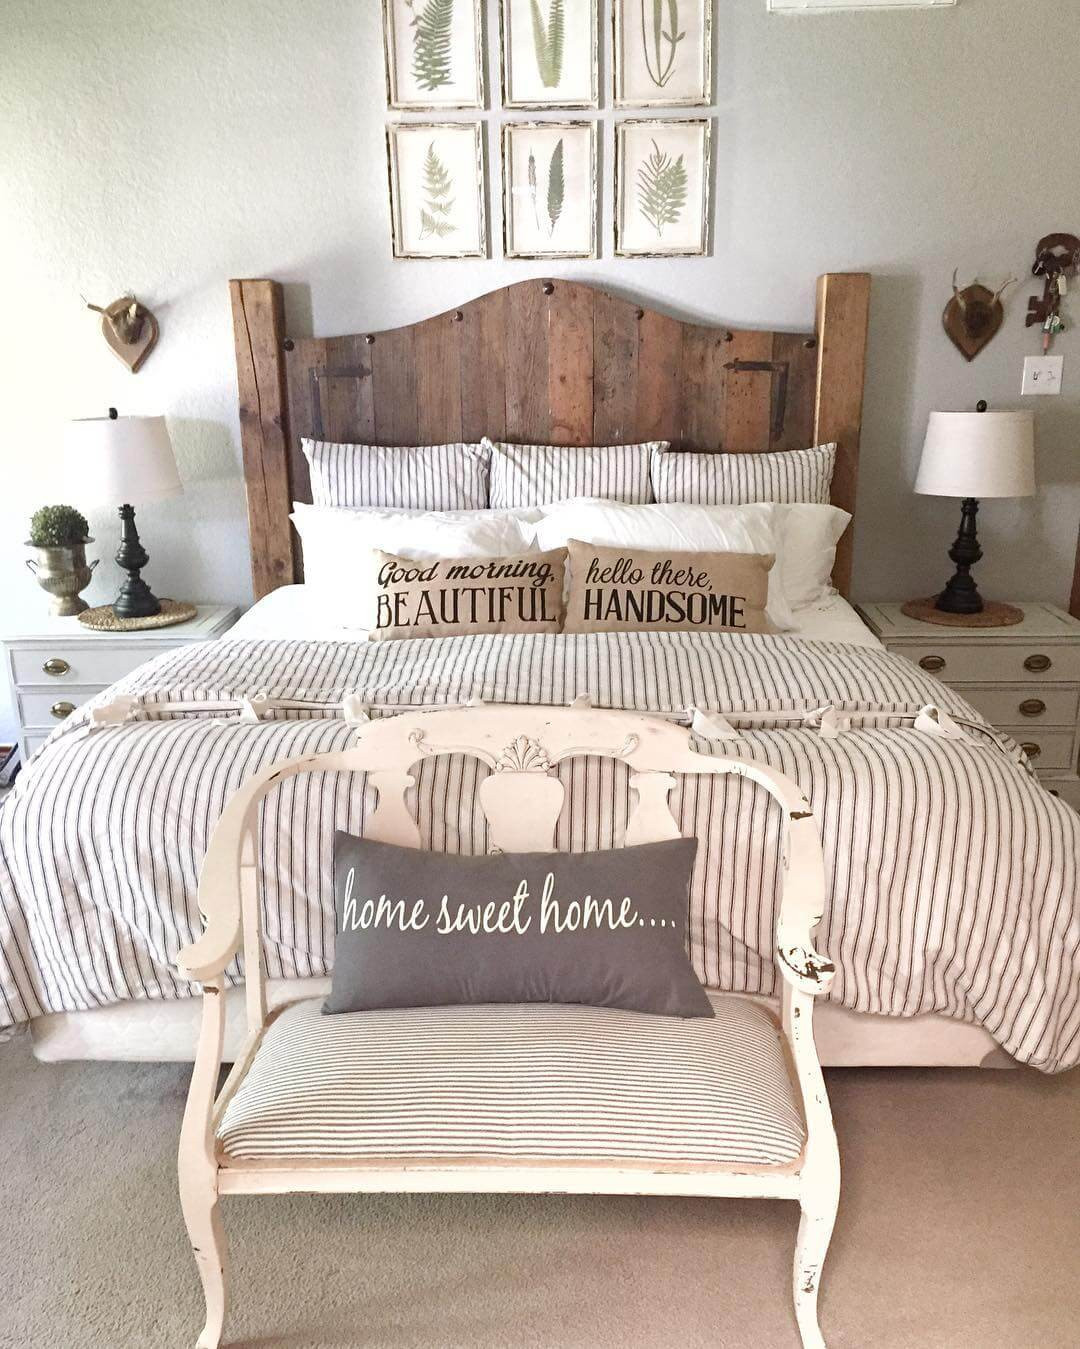 Best ideas about Bedroom Design Ideas . Save or Pin 25 Best Romantic Bedroom Decor Ideas and Designs for 2019 Now.